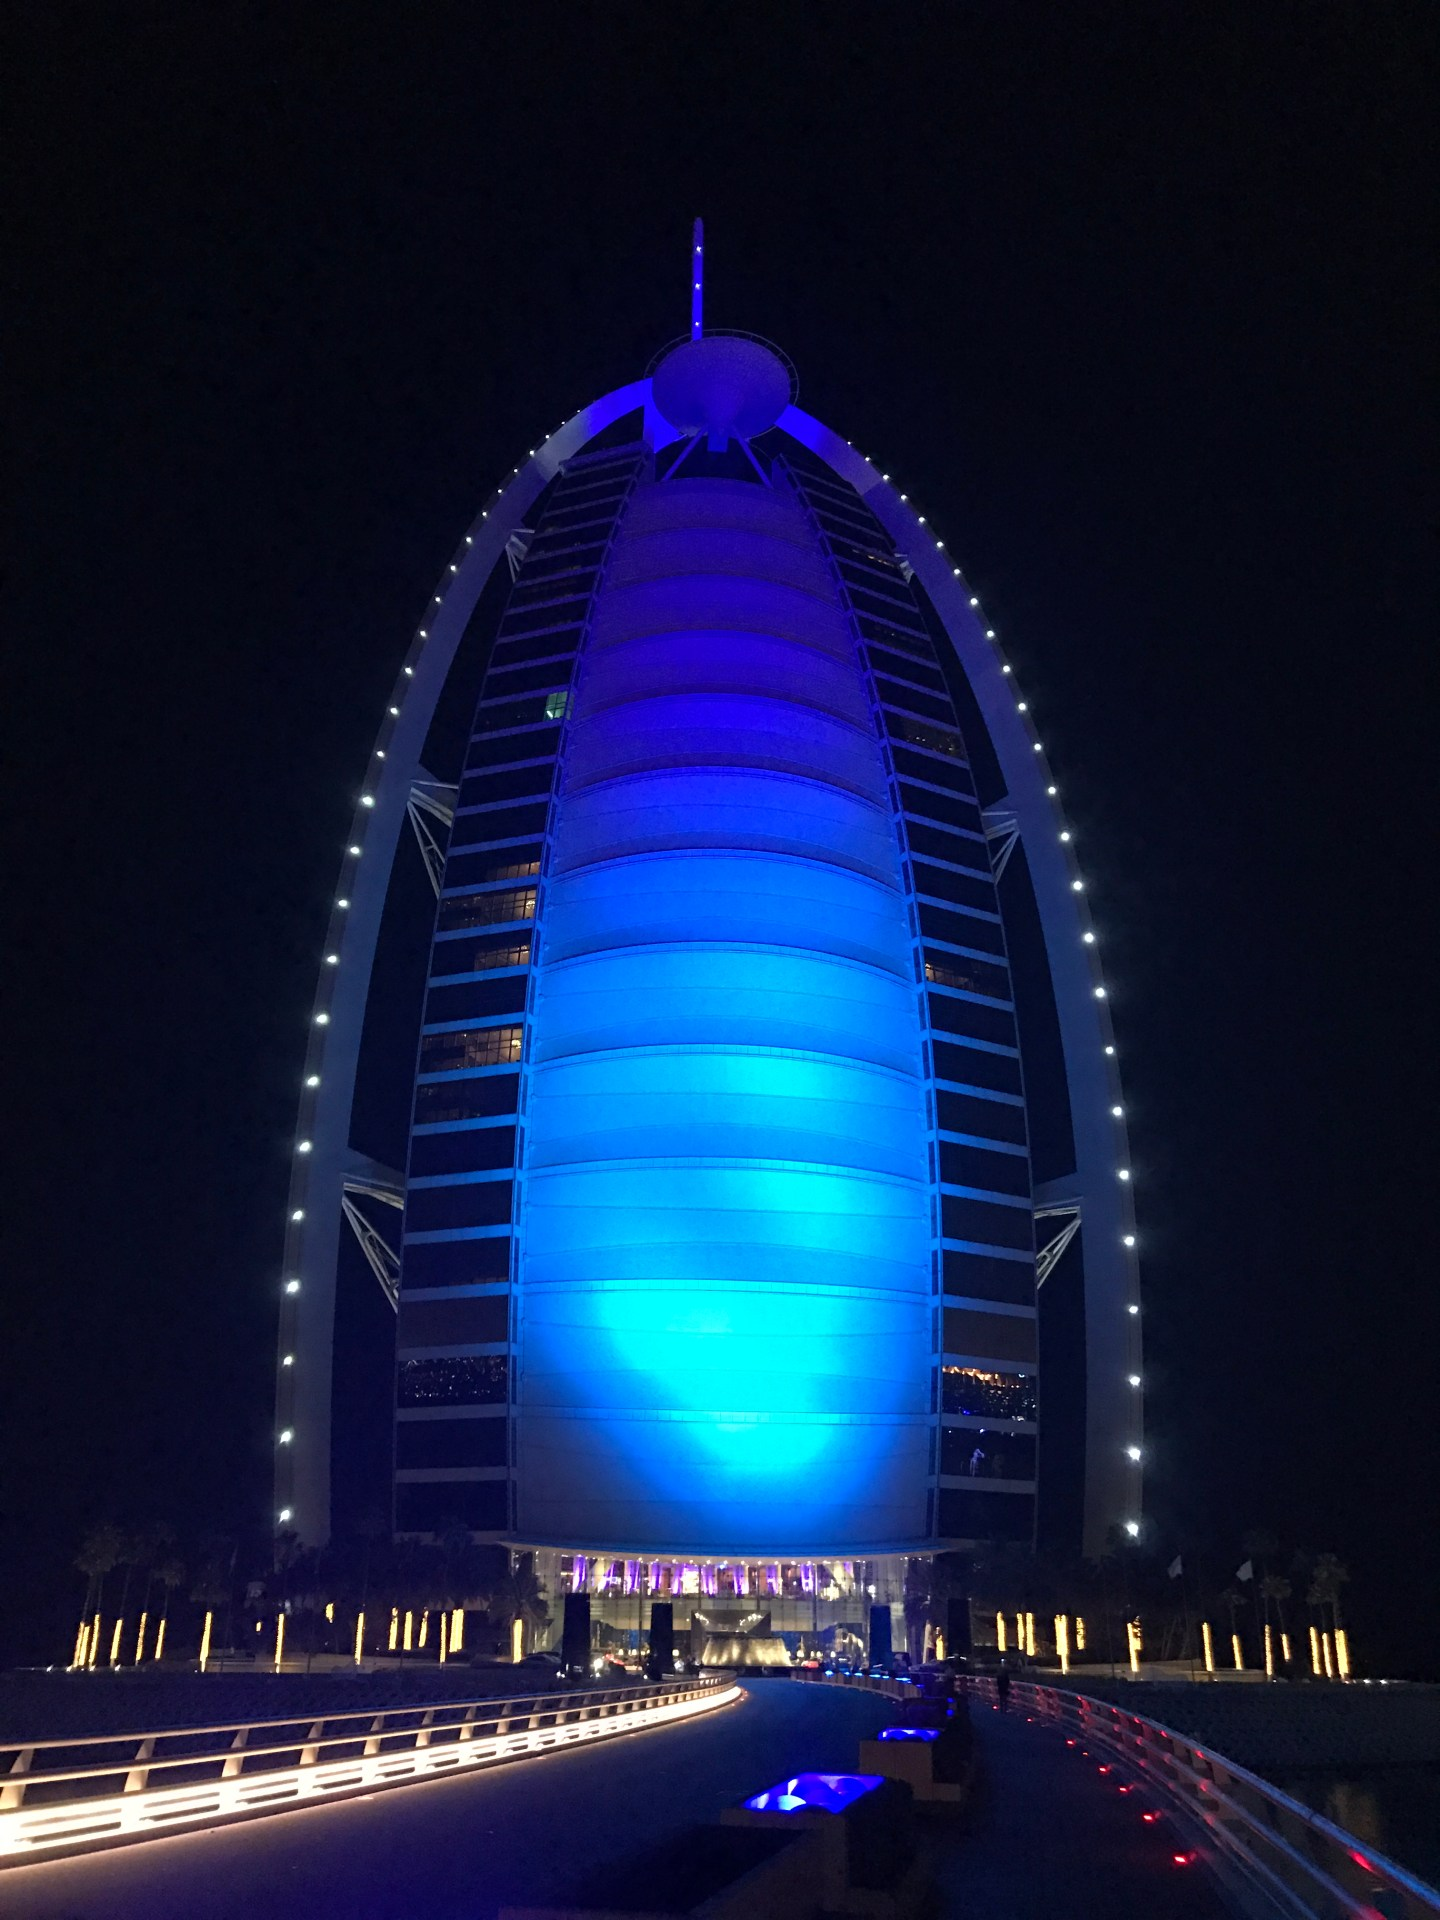 Review: Junsui restaurant, Burj al Arab